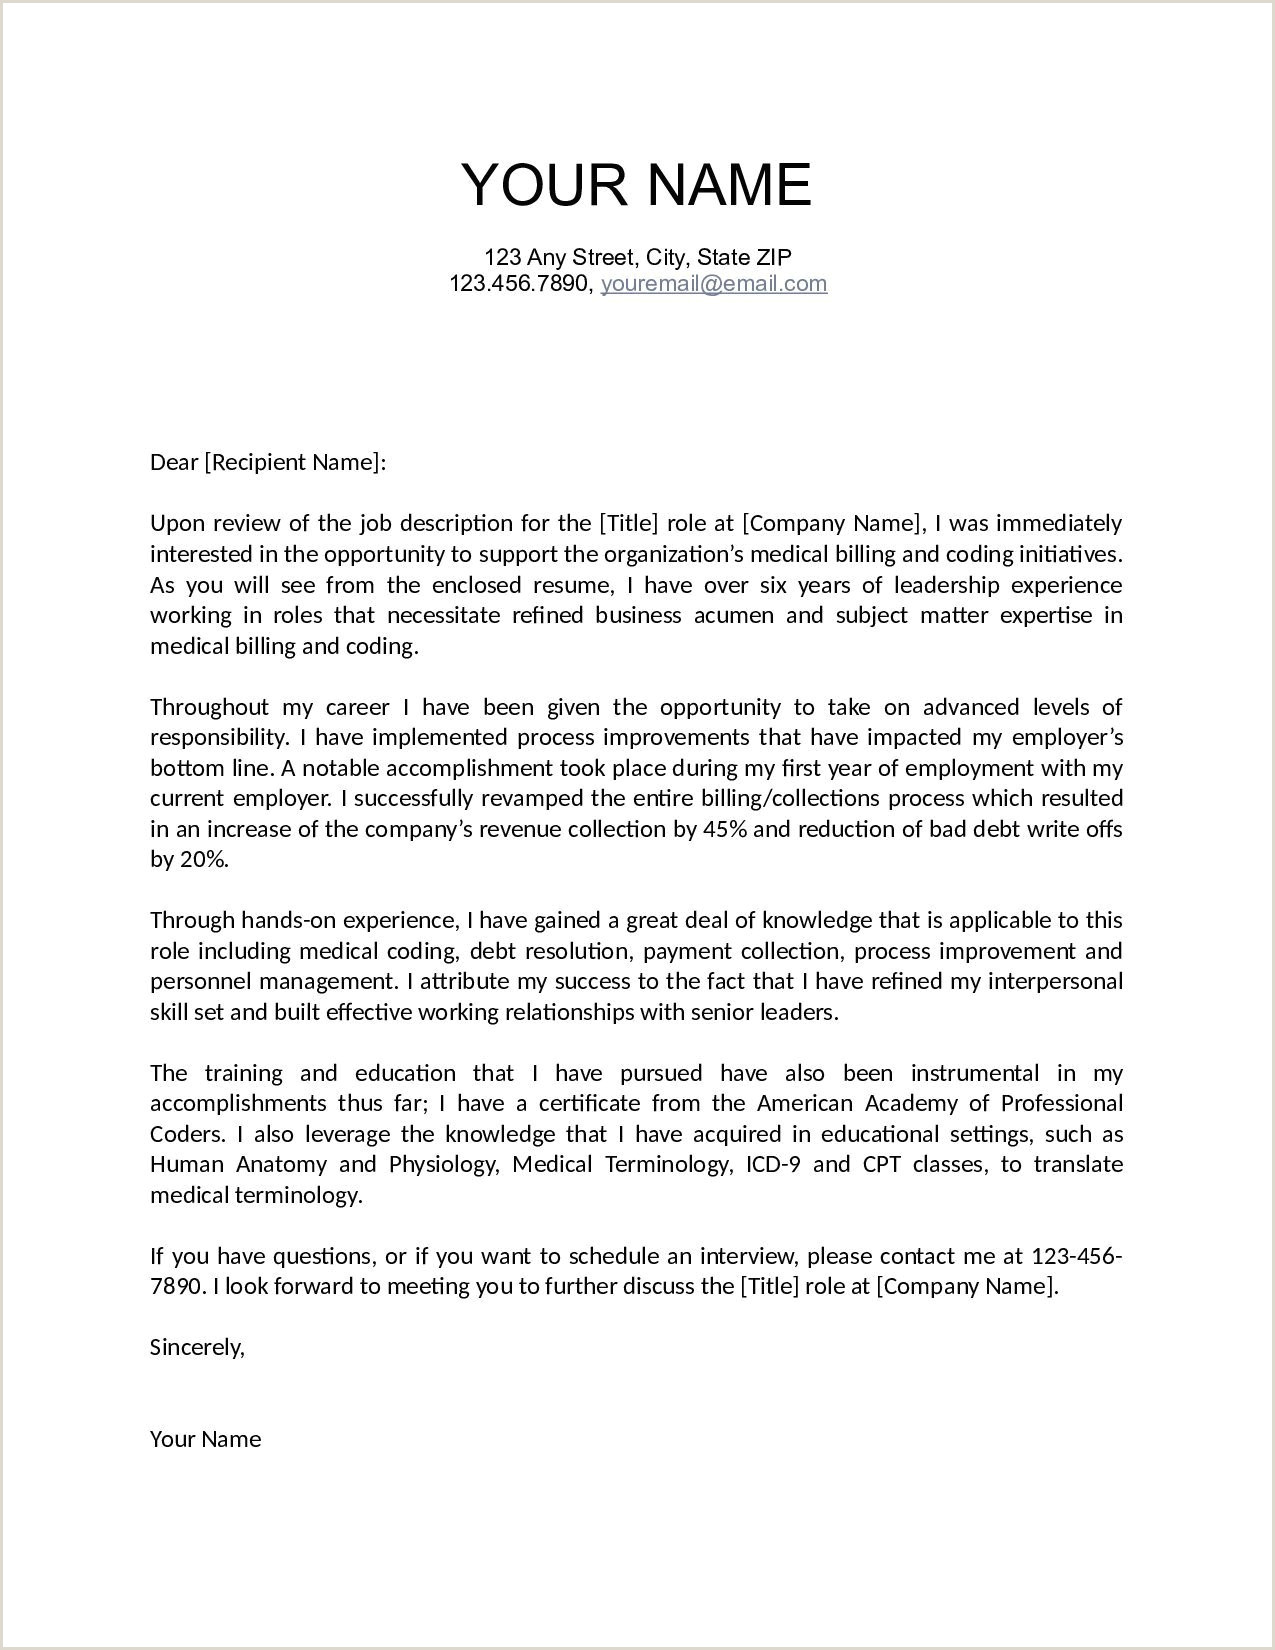 Application Cover Letter Template Collection